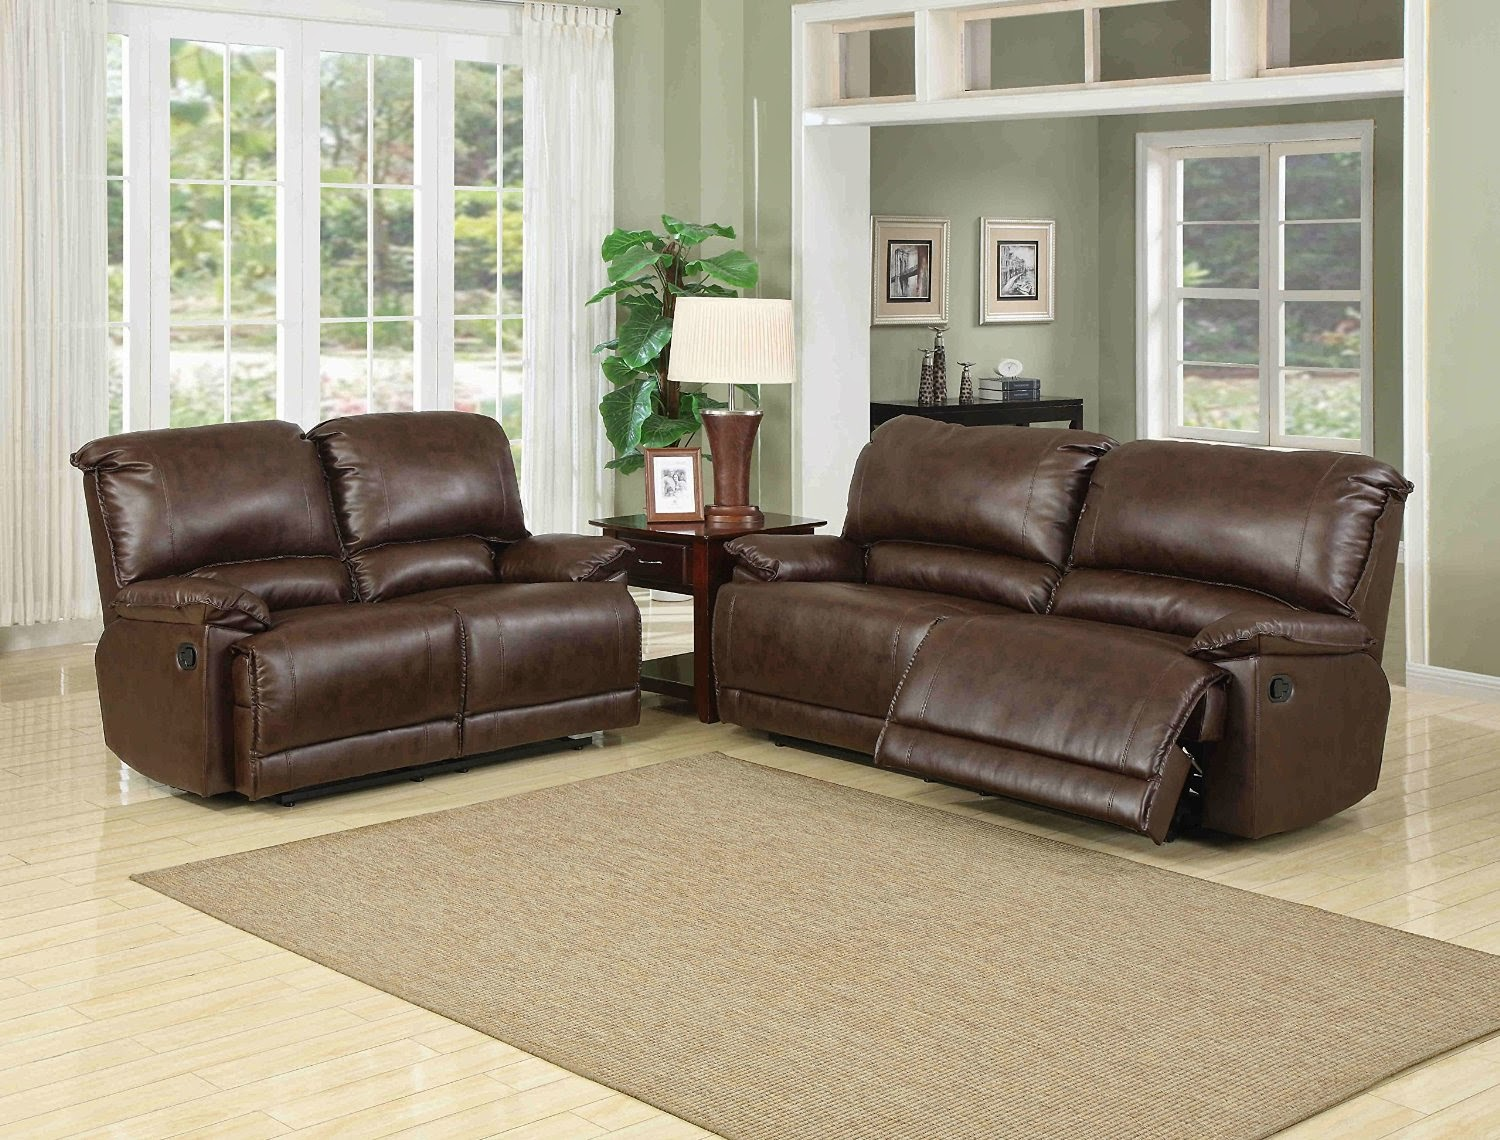 leather sofa complaints slipcover for dual recliner reviews best